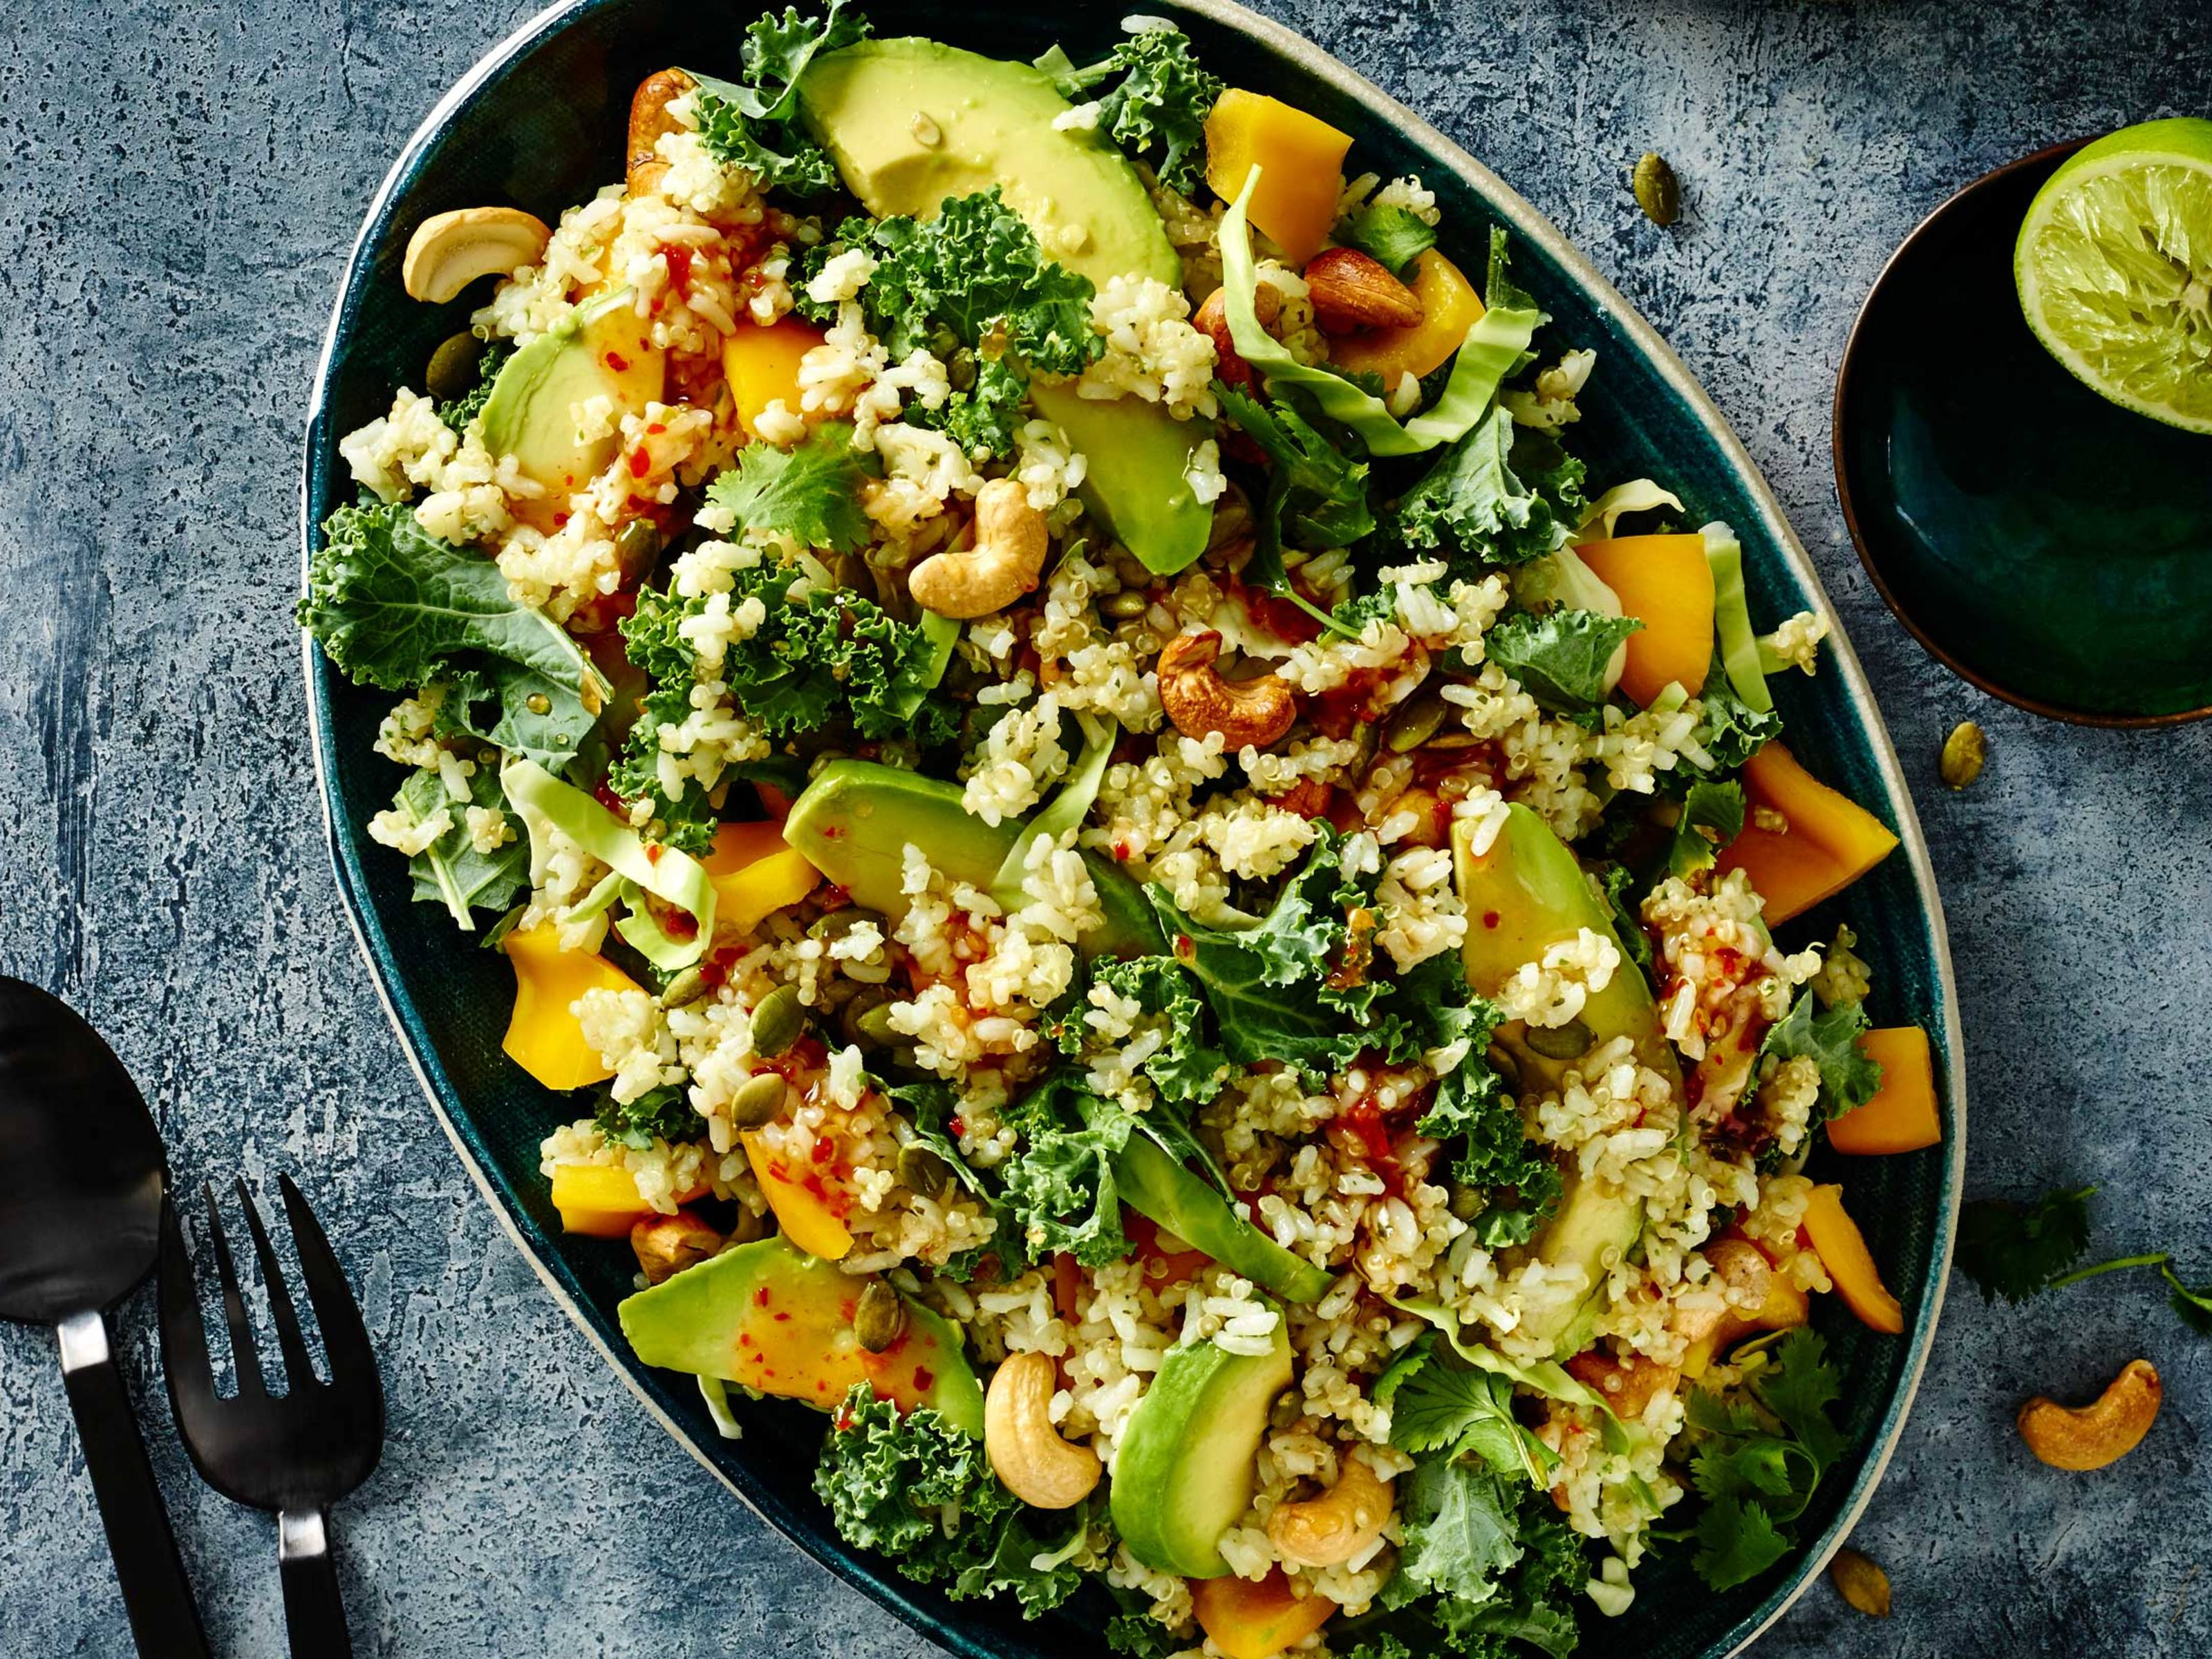 Recipes and easy mid week meal ideas continental coconut rice quinoa salad forumfinder Image collections